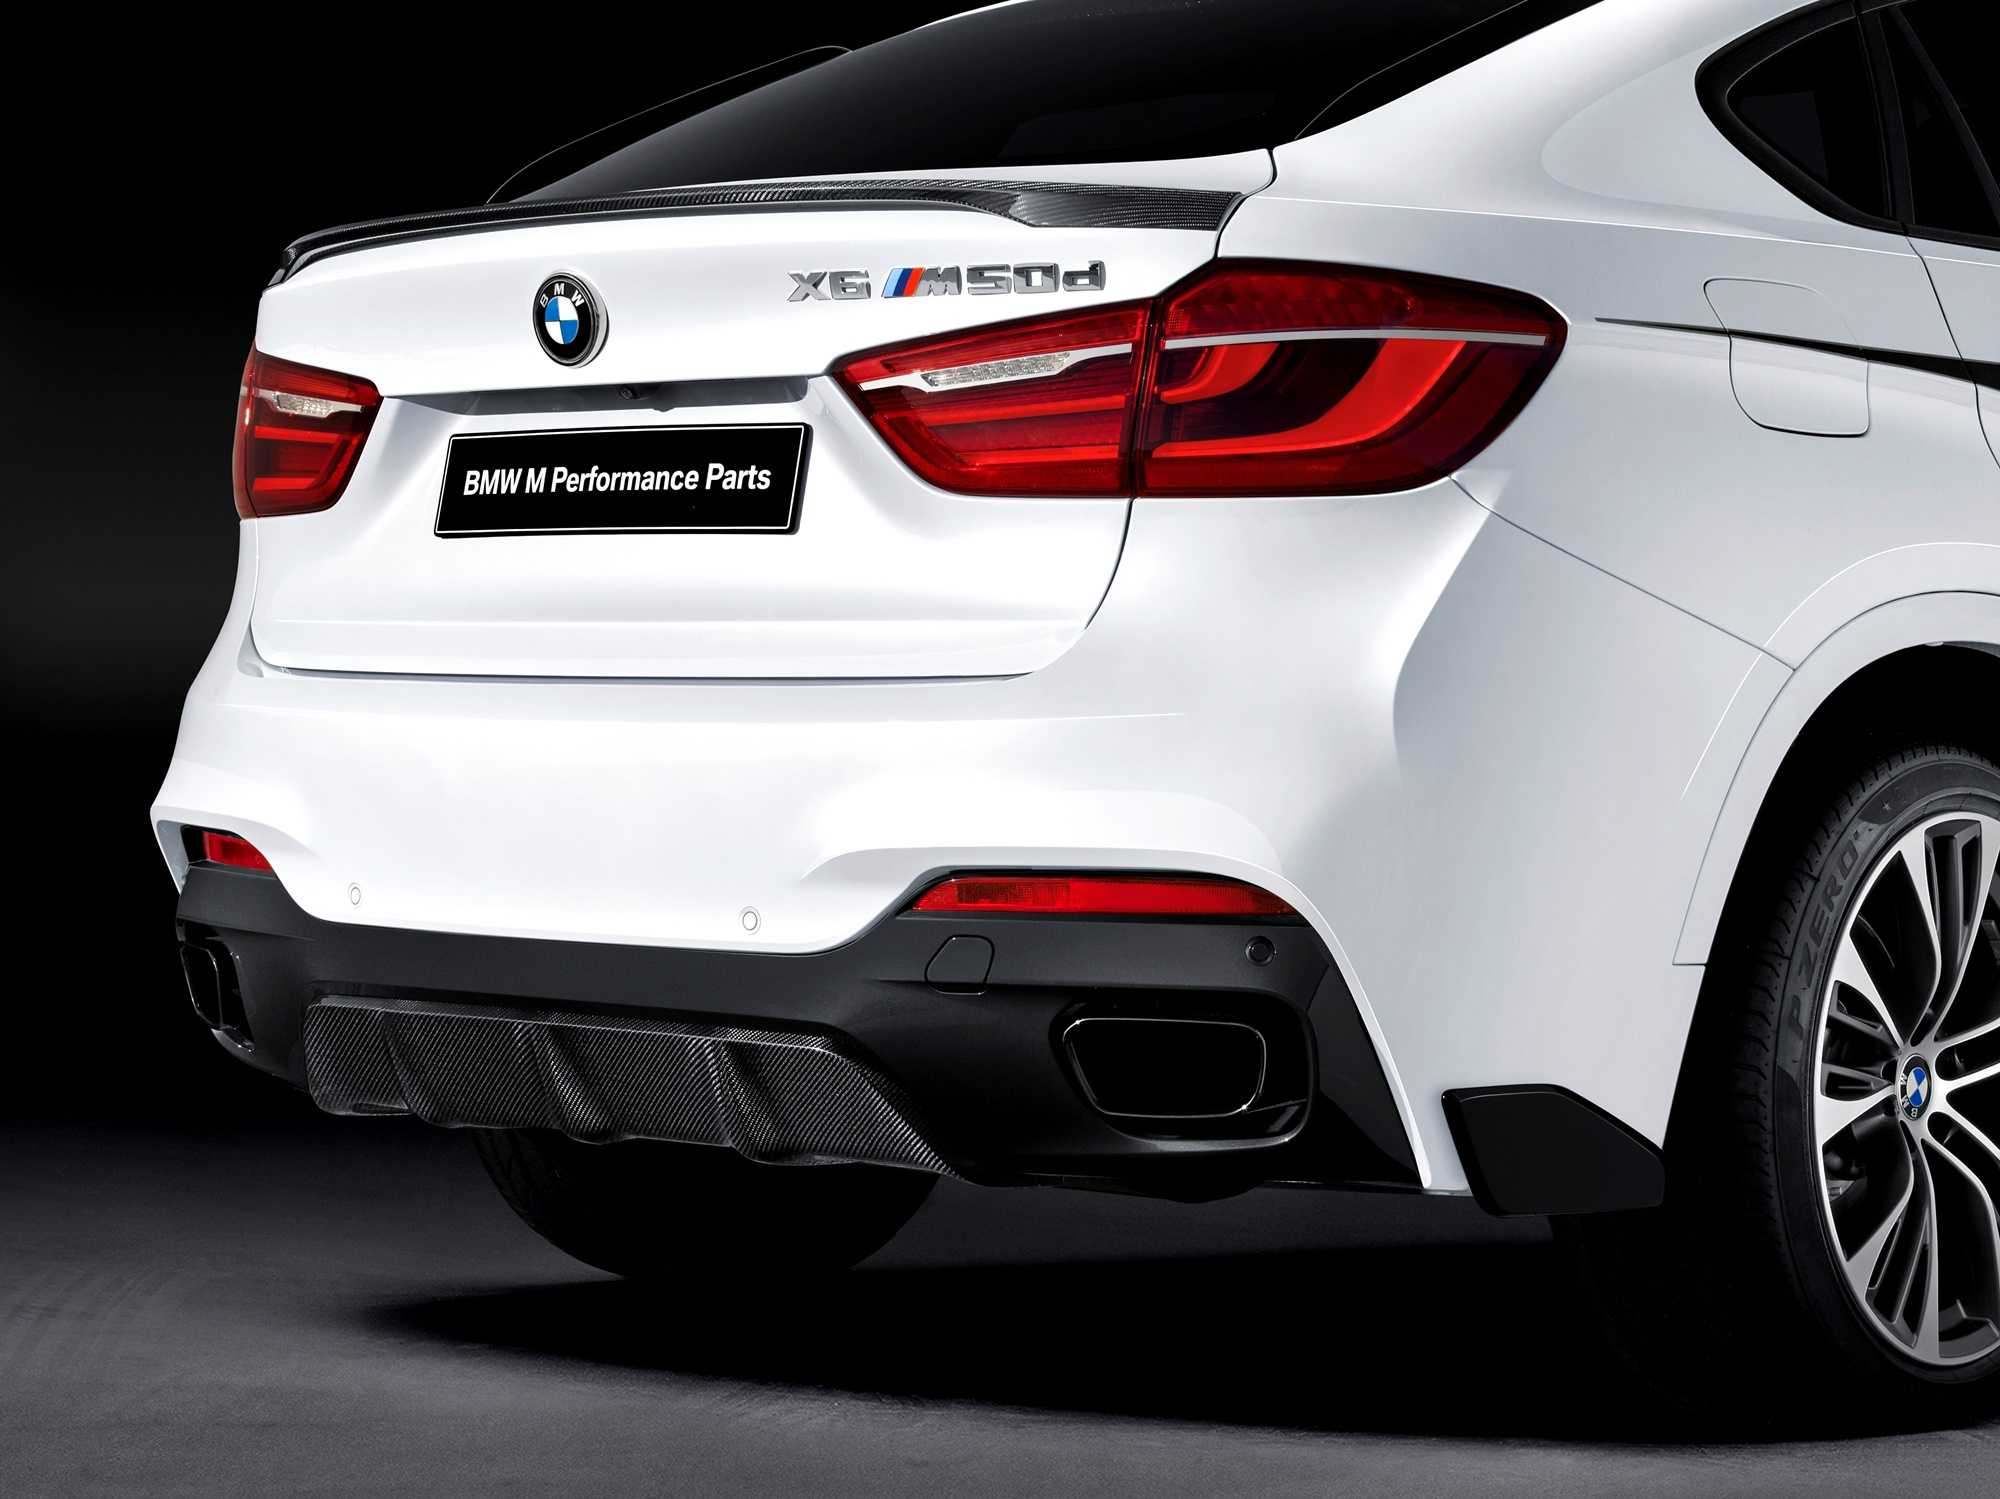 Gift Ideas 2015 Bmw X6 M Performance Parts Showcase